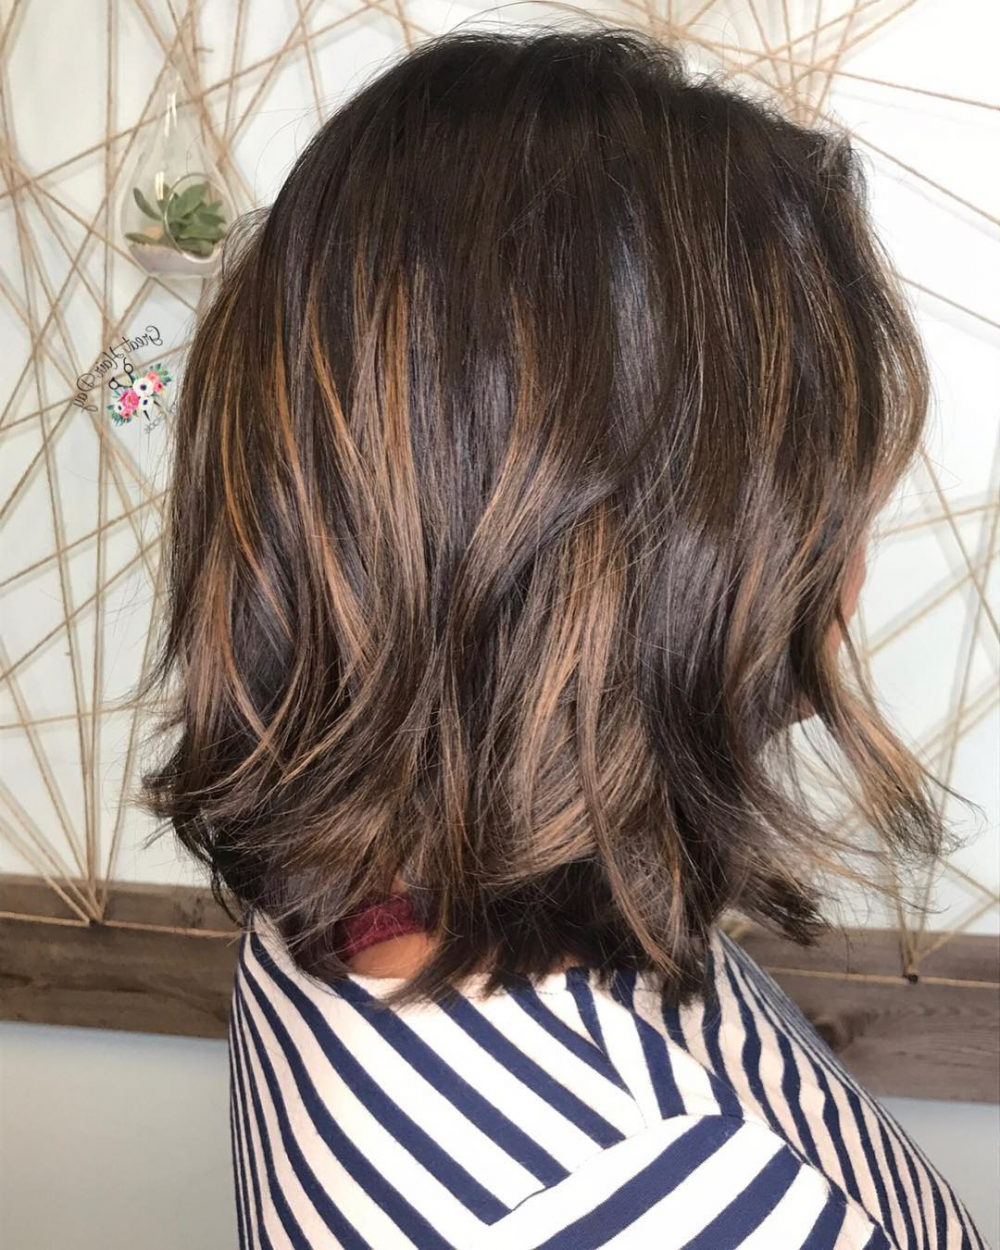 34 Sweetest Caramel Highlights On Light To Dark Brown Hair (2018) With Soft Brown And Caramel Wavy Bob Hairstyles (View 5 of 25)